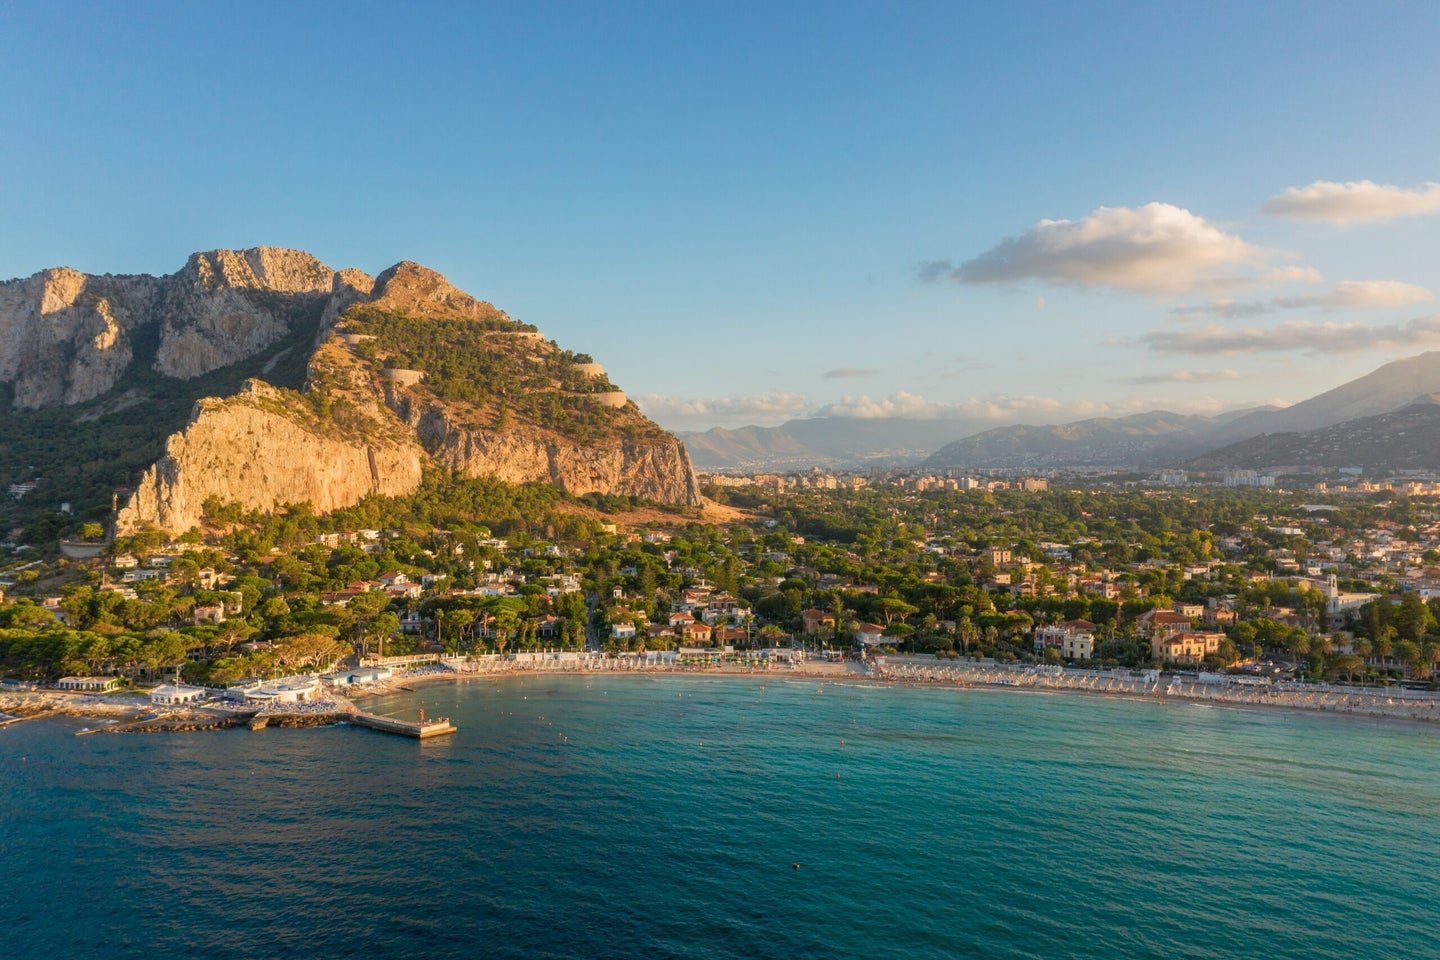 costal view of palermo, sicily